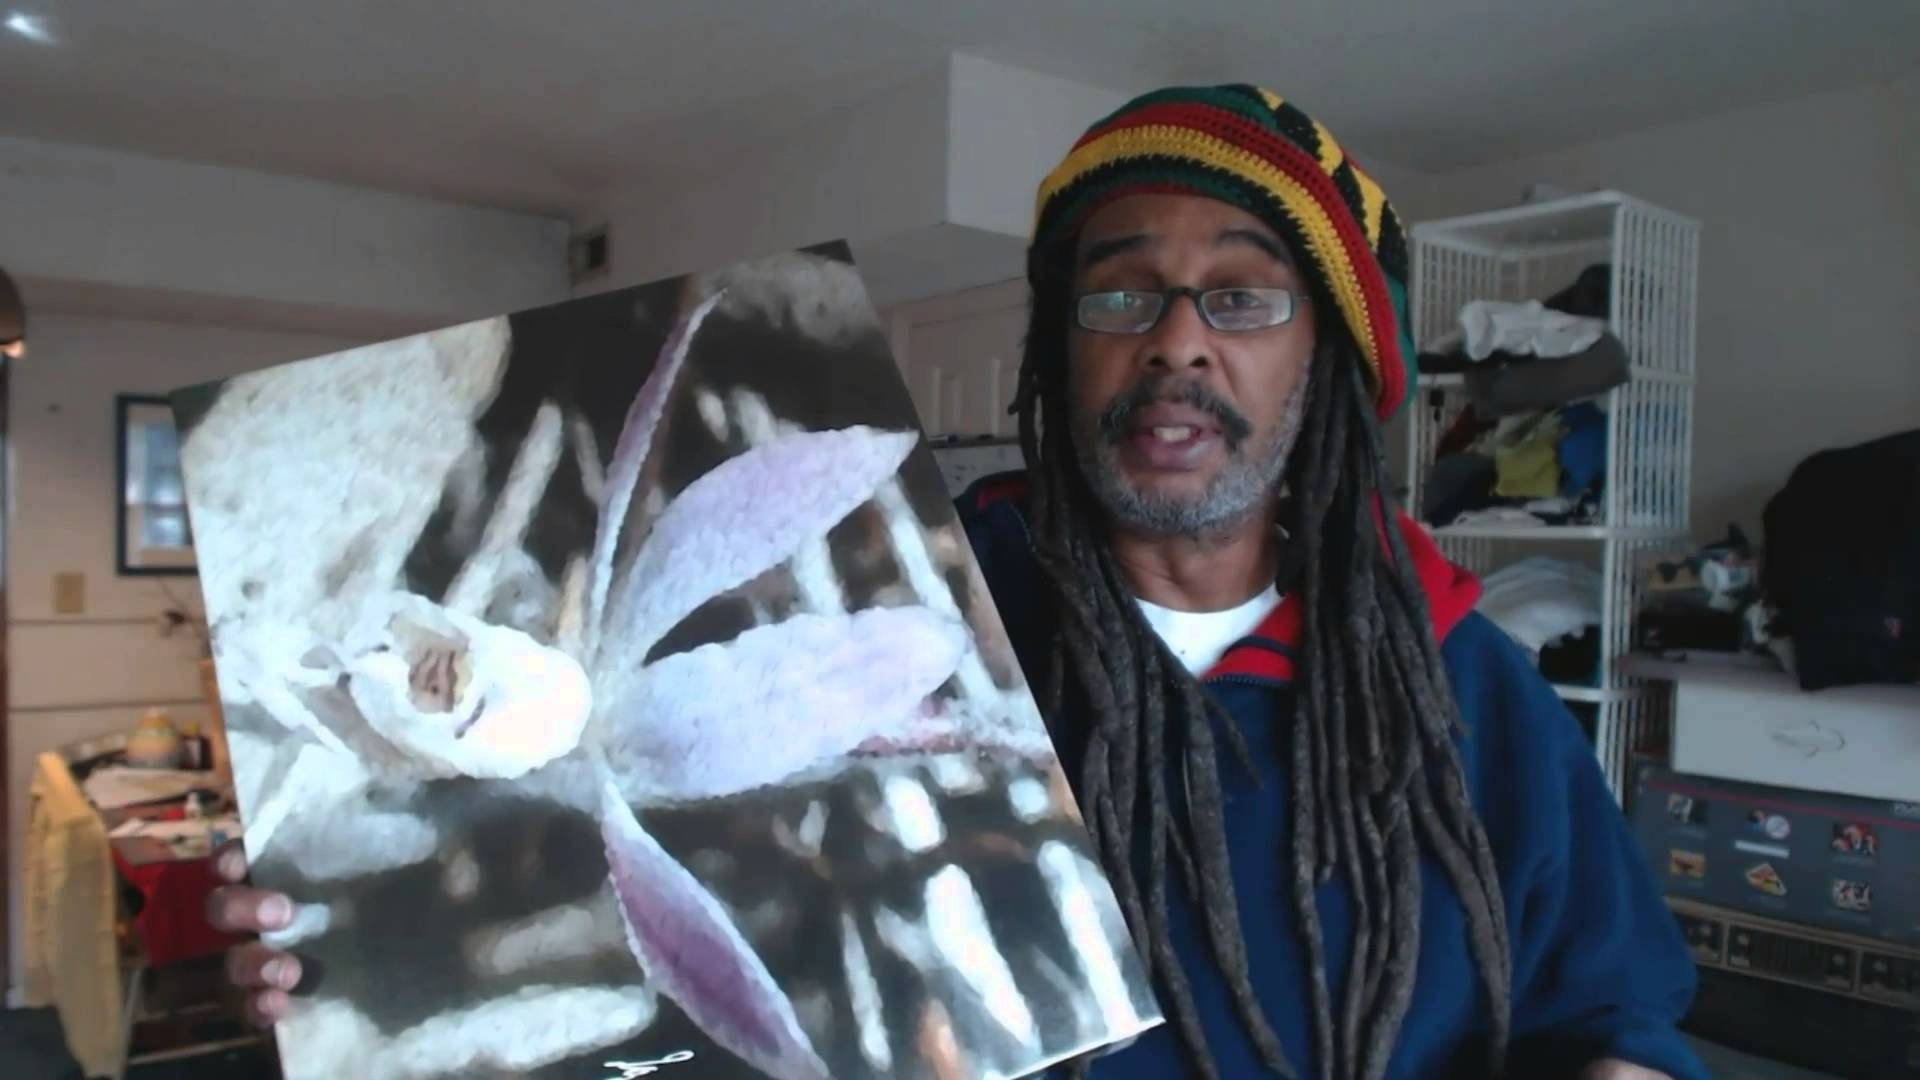 Canvas Wall Art At Walmart With Regard To Widely Used Picasso Goes To Walmart Unboxing Canvas And Wall Art – Youtube (View 4 of 15)